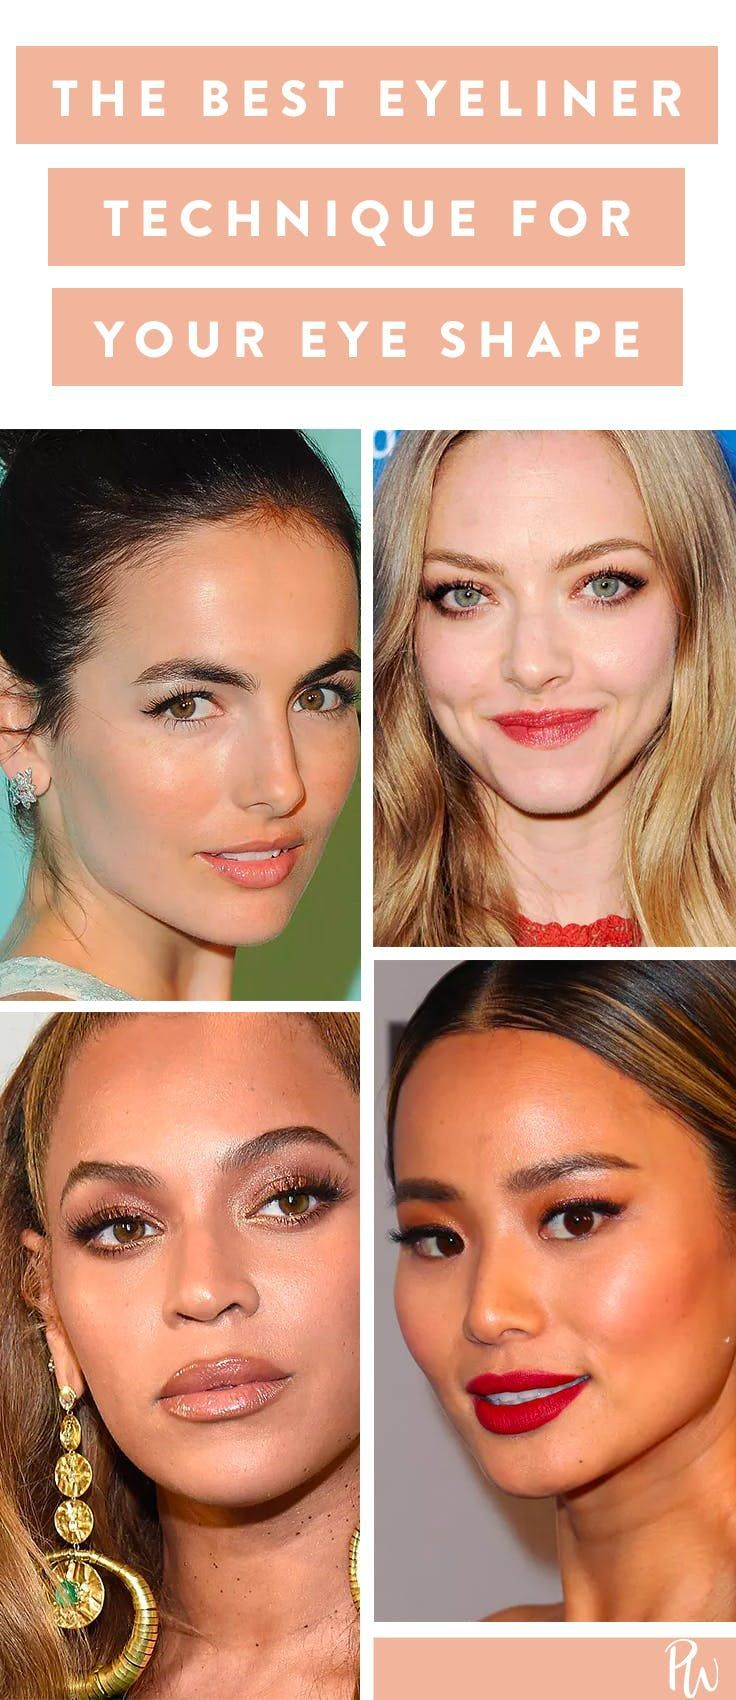 What Is Considered The Most Beautiful Eye Shape What Makes A